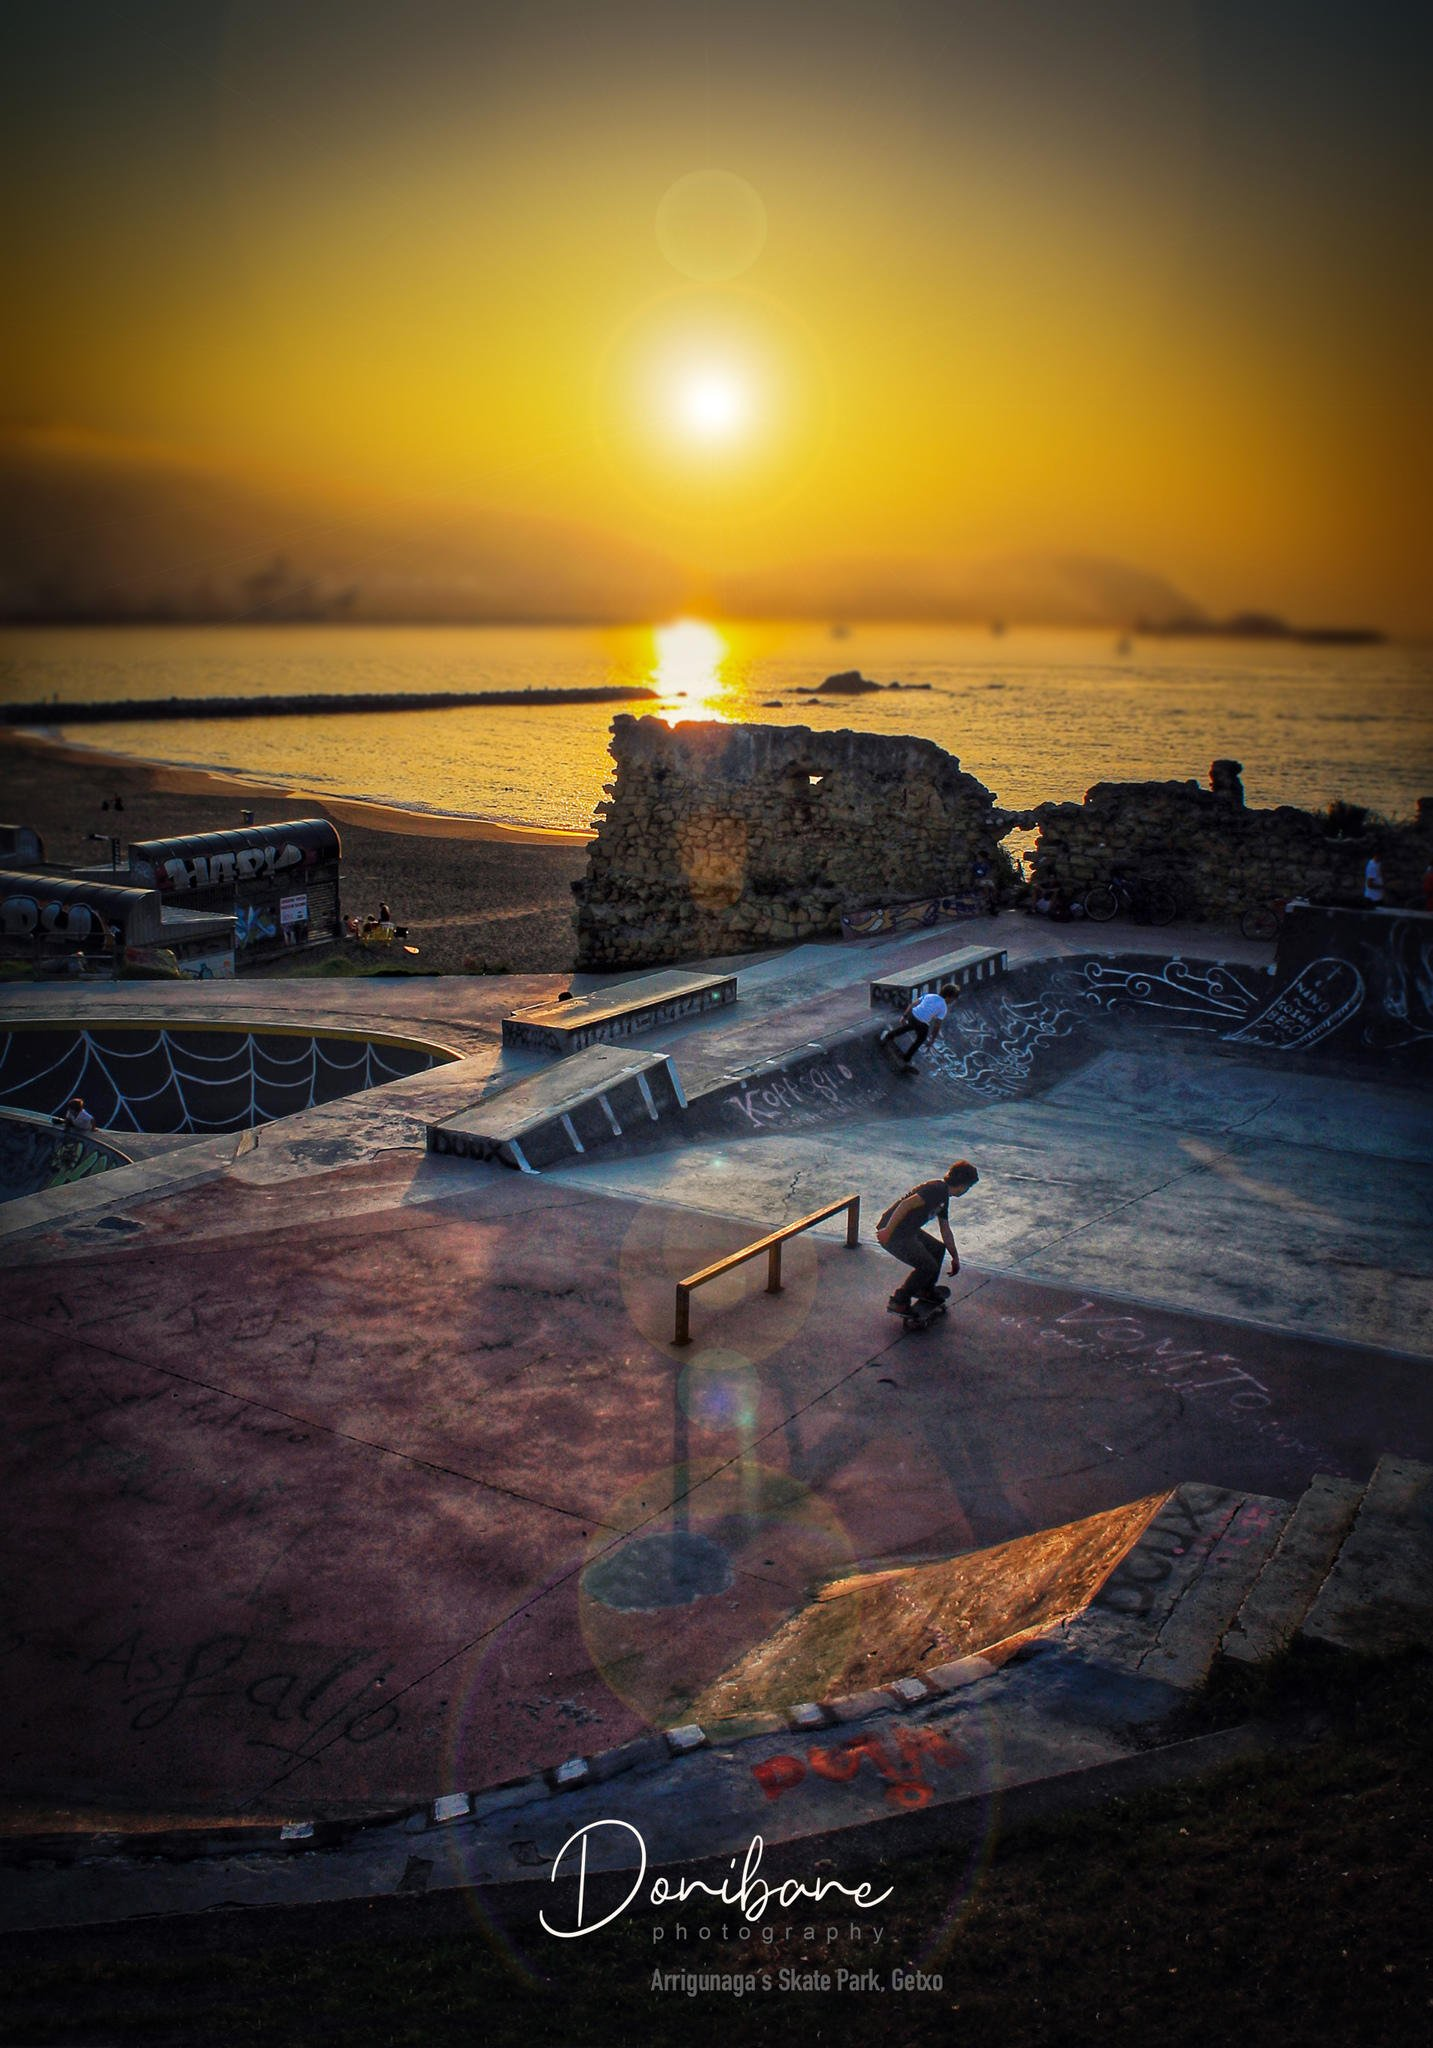 Skate Park in Getxo, Basque Country